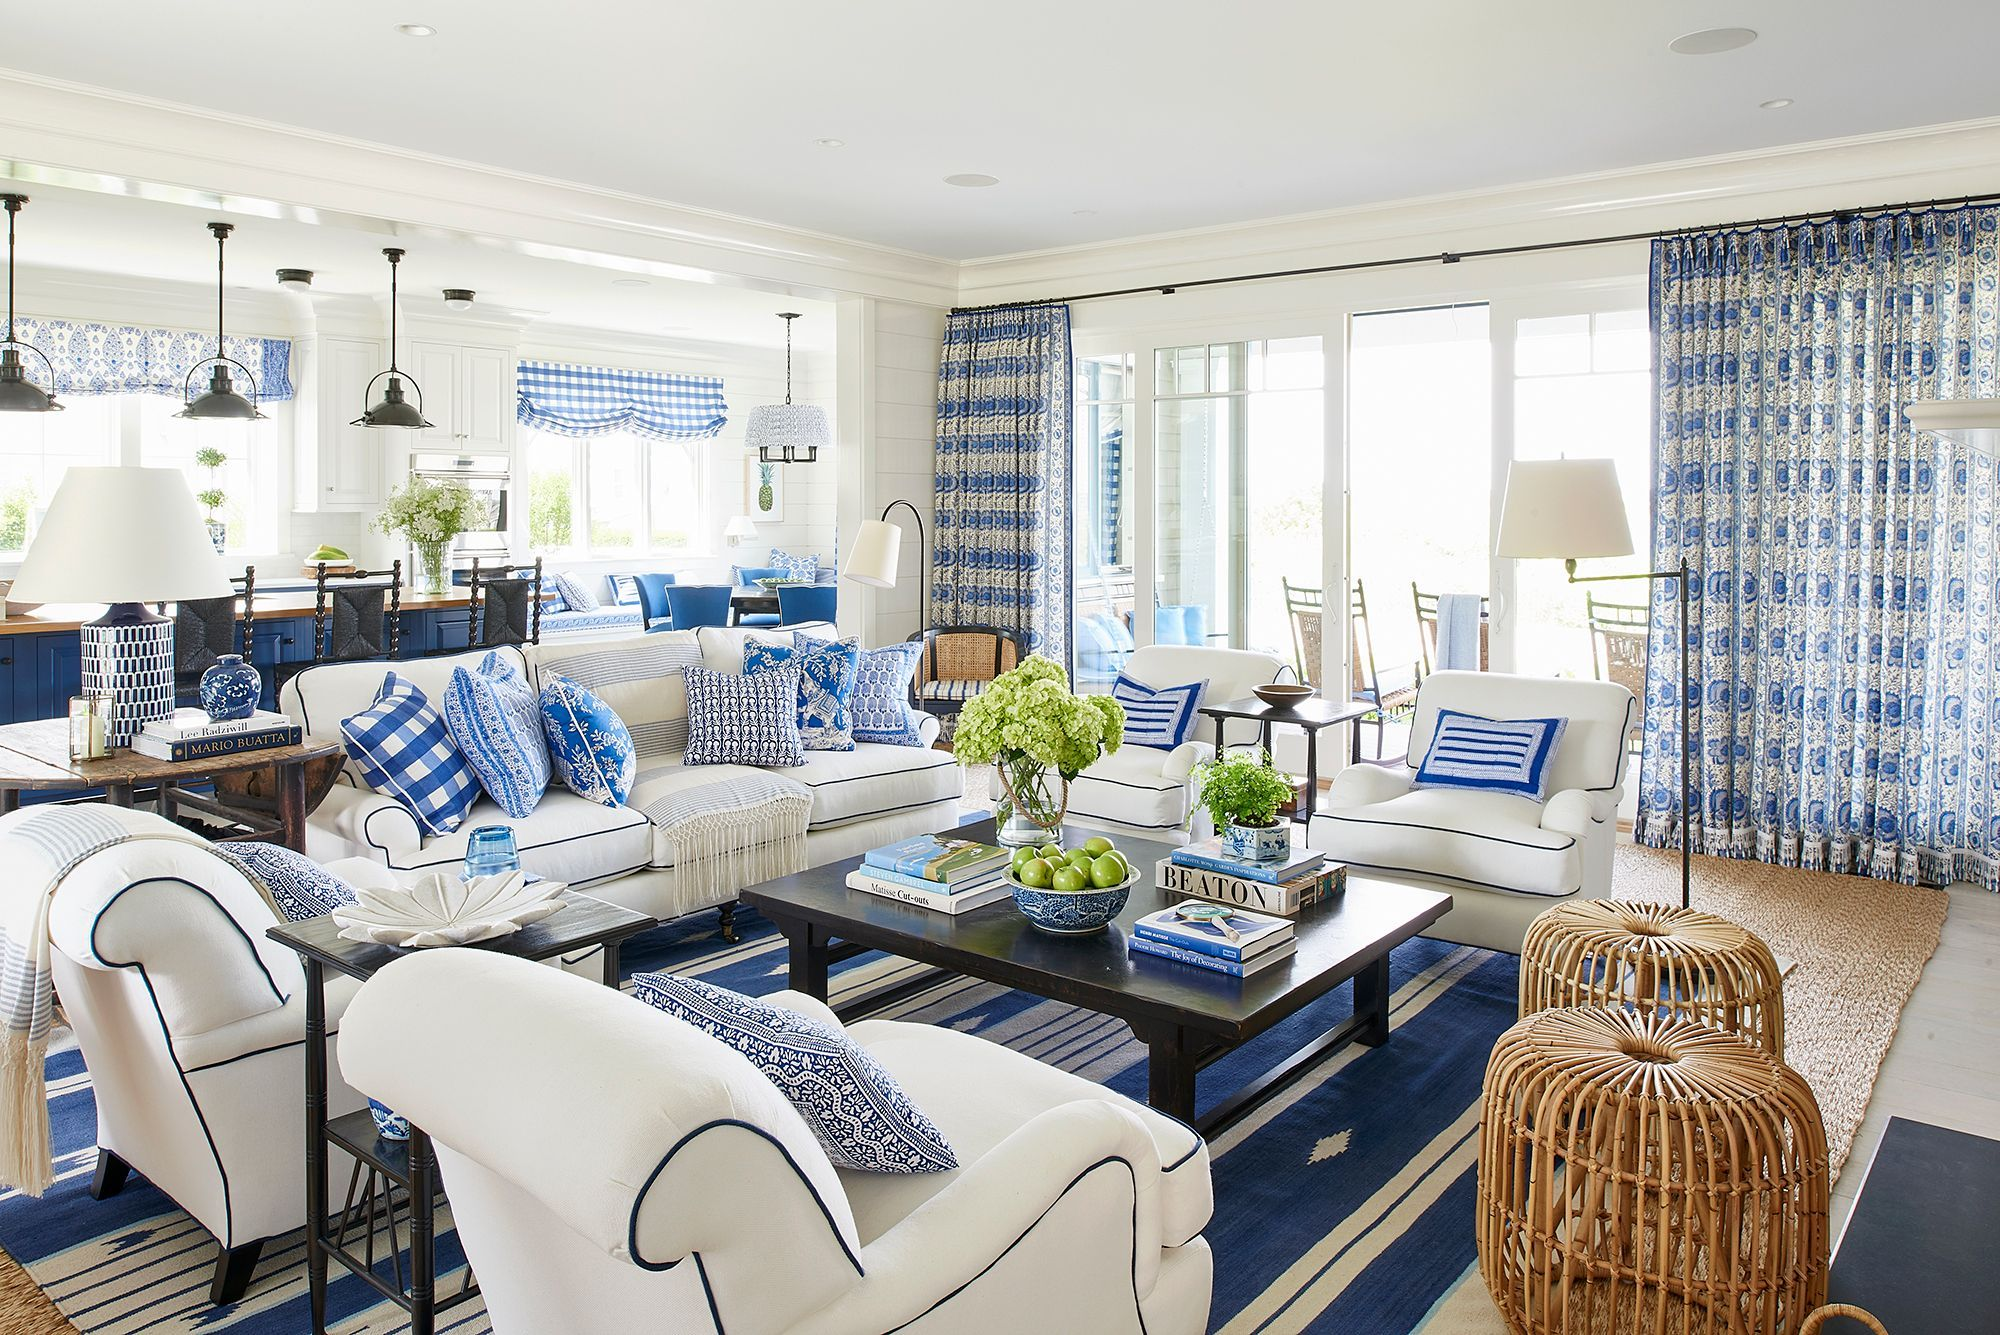 White Furniture With Dark Blue Striped Dhurrie And Patterned Pillows